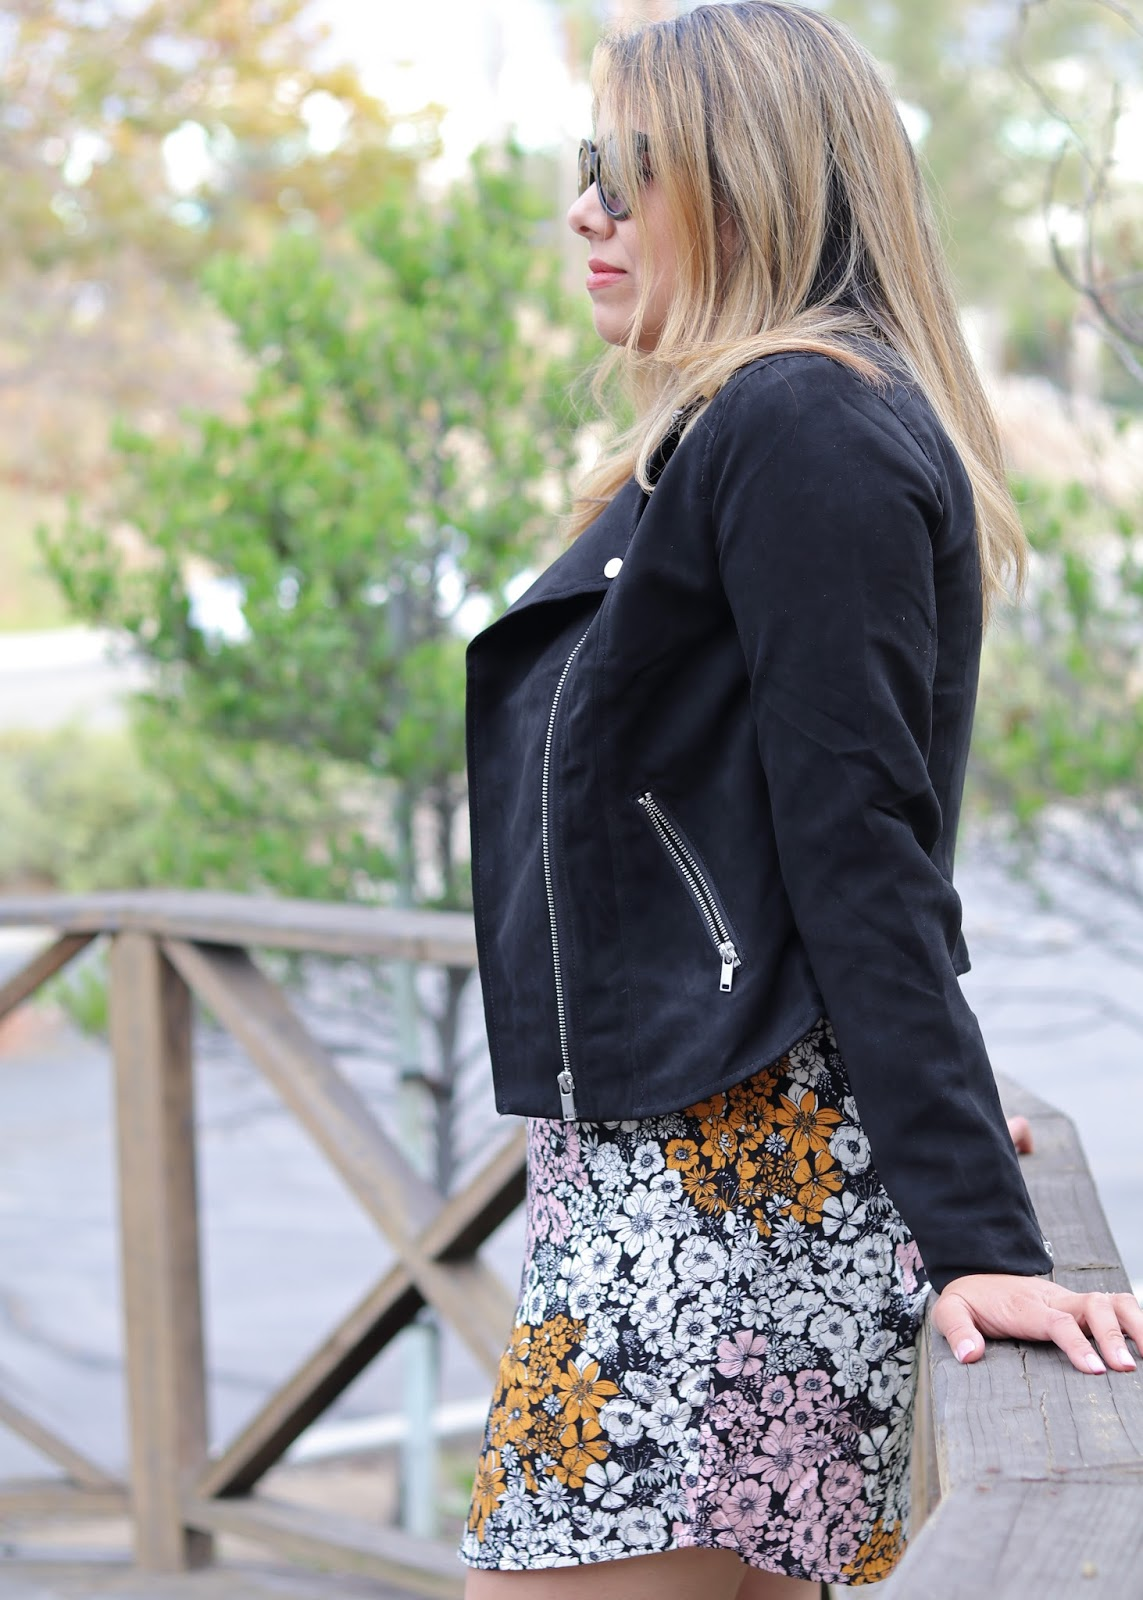 socal fashion blogger, fall fashion 2016, what to wear this fall, fall florals